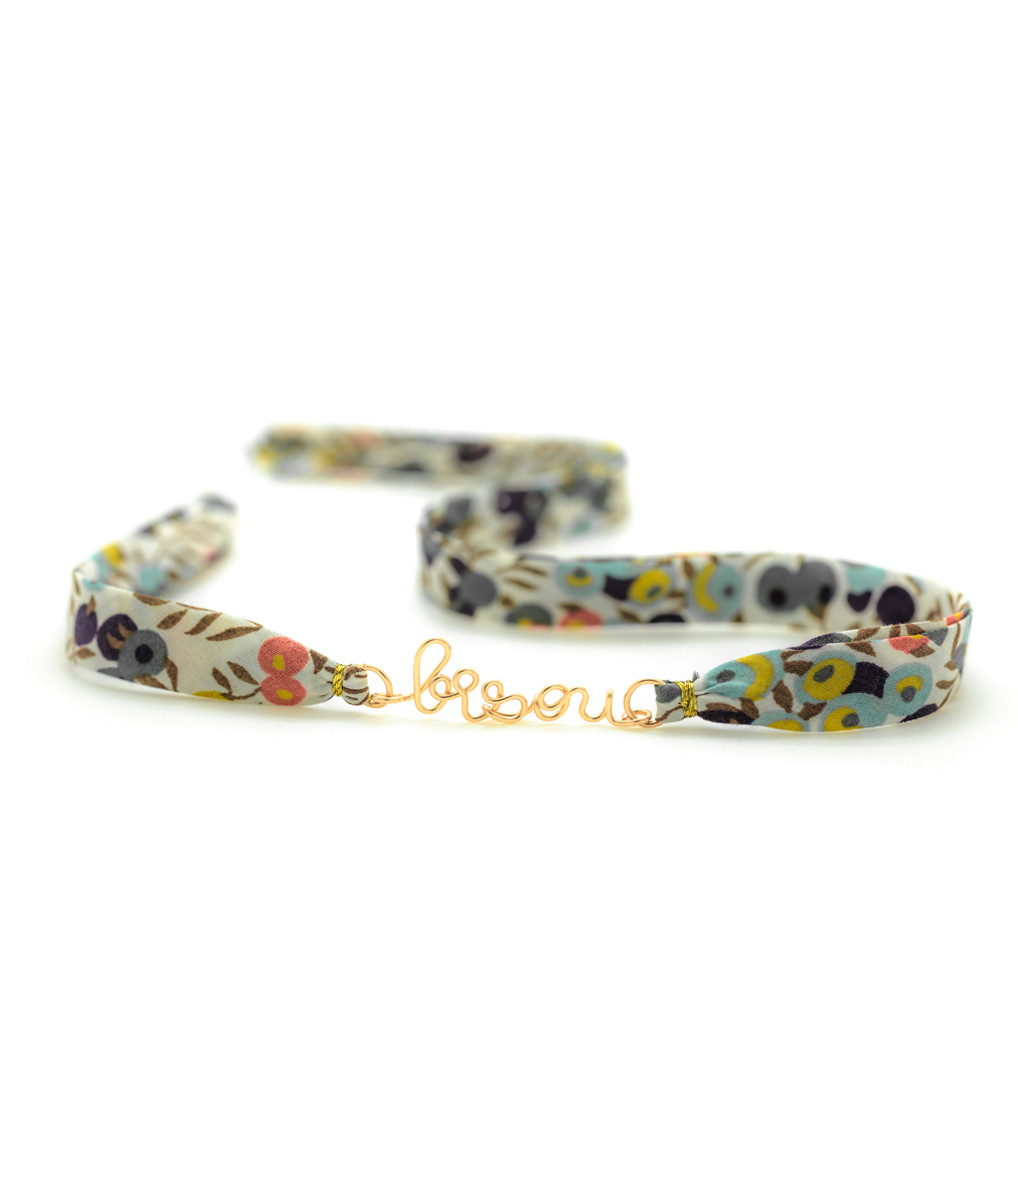 ATELIER PAULIN - Bracelet Double Liberty Bisou Gold Filled 14K